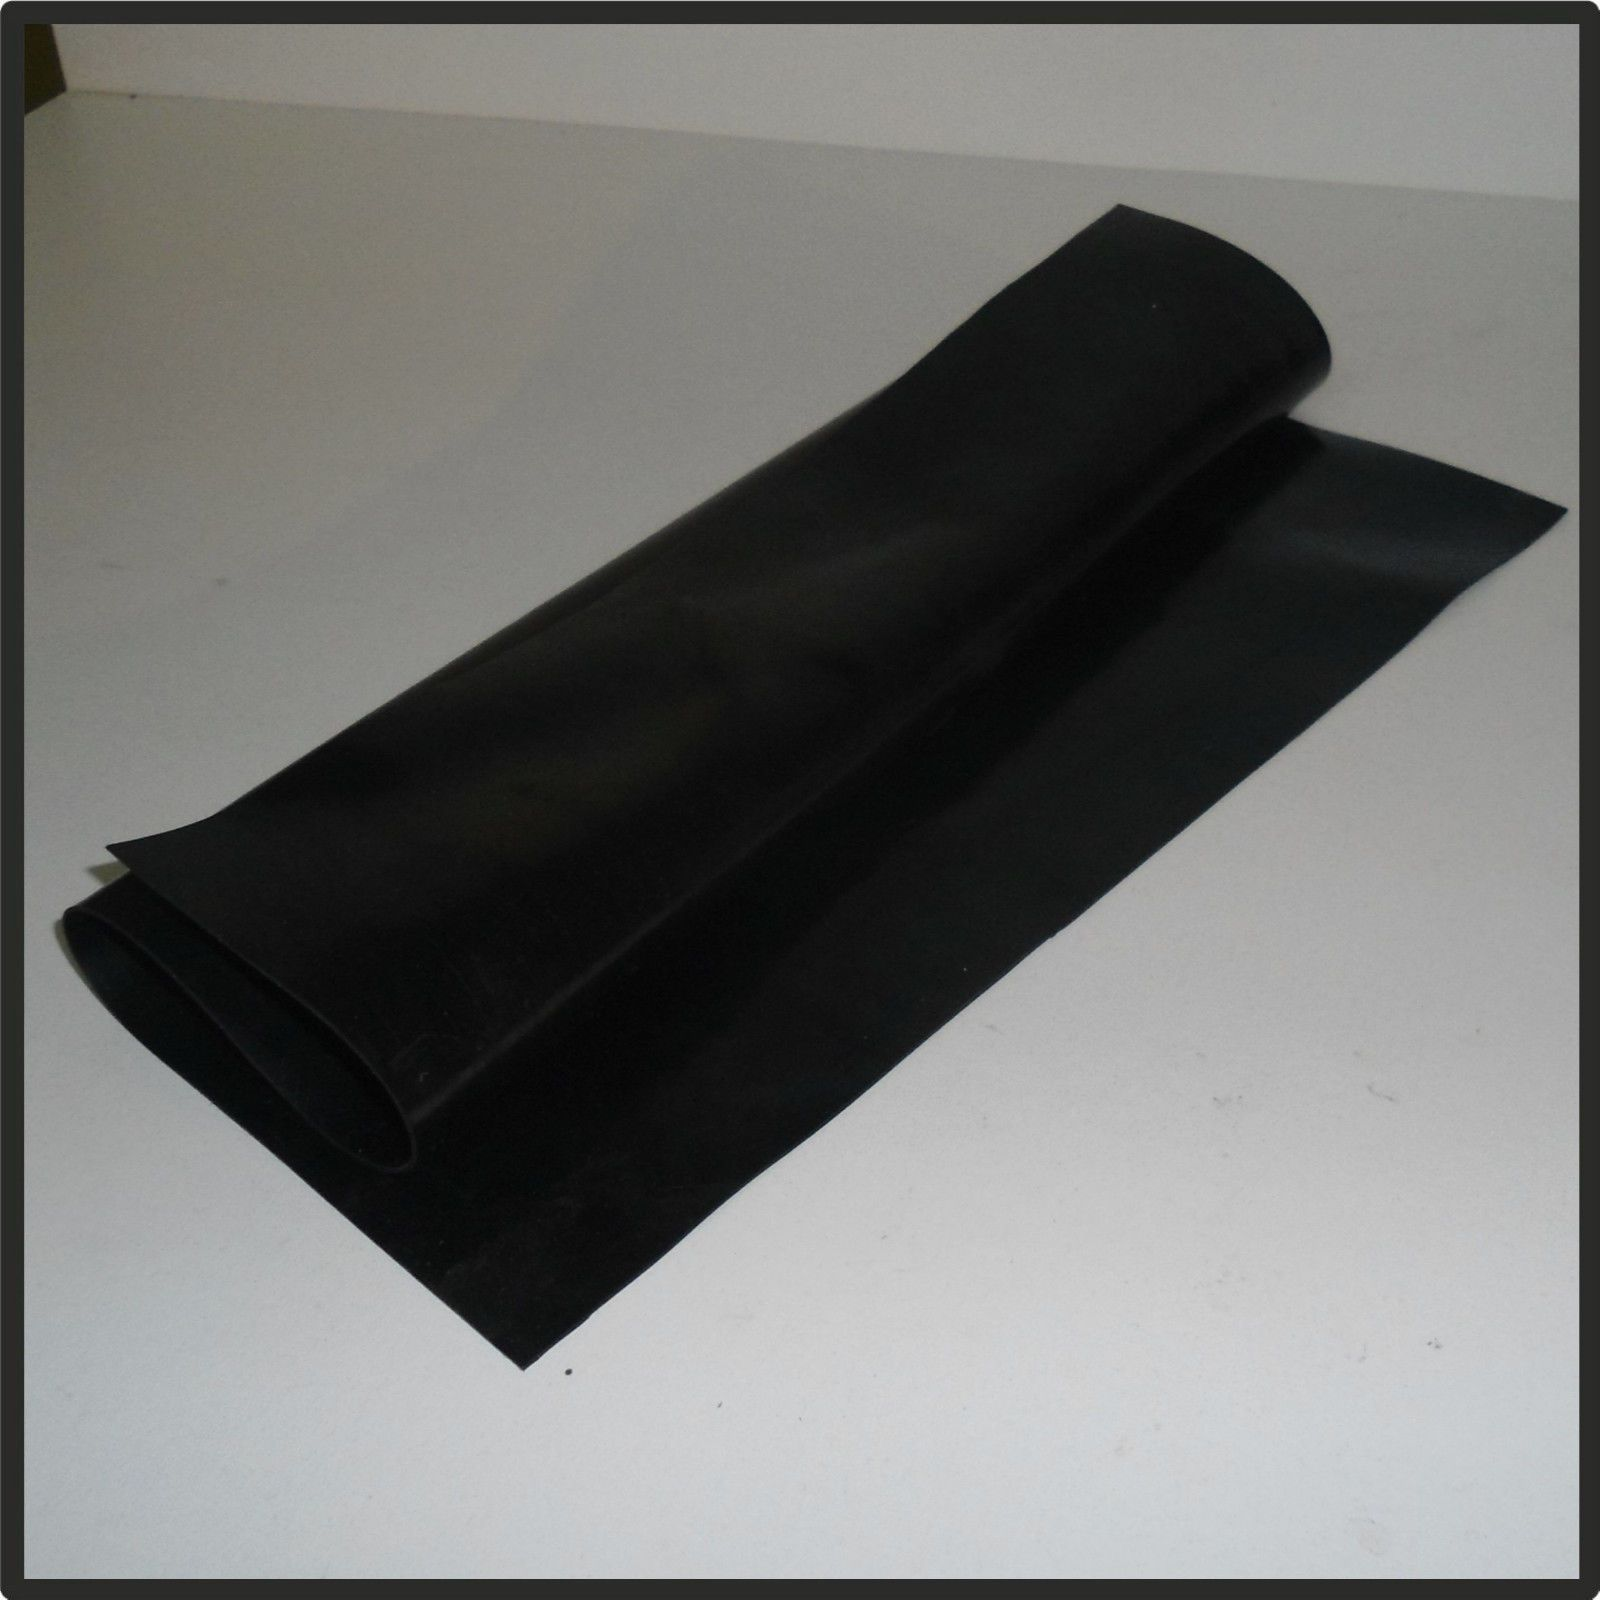 Details About Neopren Rubber Sheet 0 8mm 1mm 2mm 3mm Quality Grade 1 Sheet Foam Sheets Rubber Body Colour